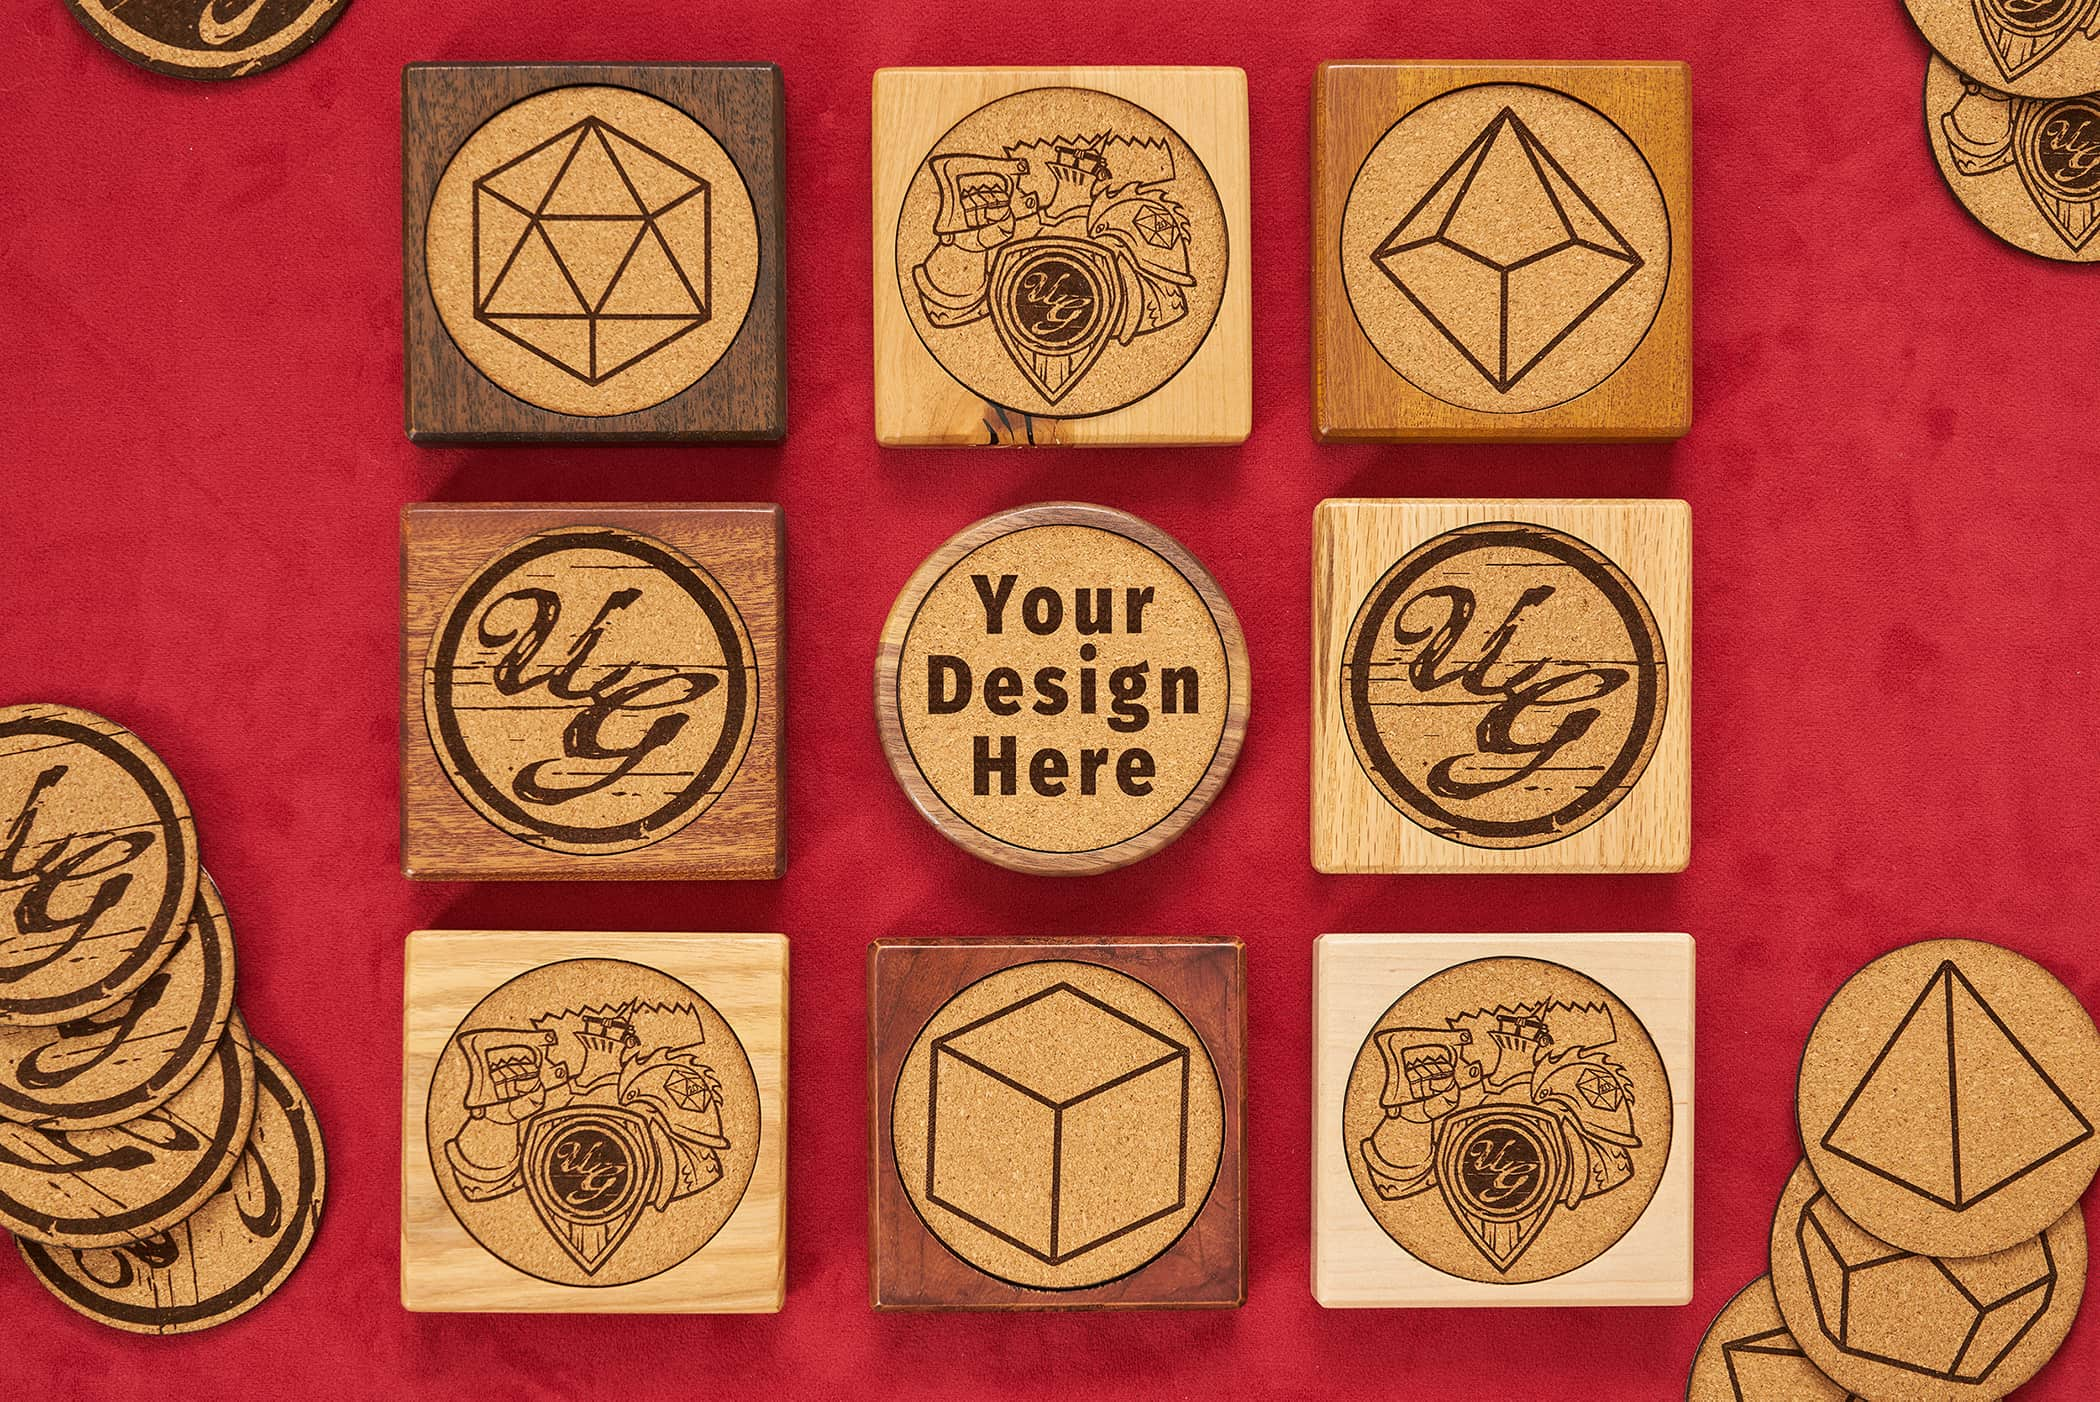 Custom wooden coasters and personalization from Uniquely Geek